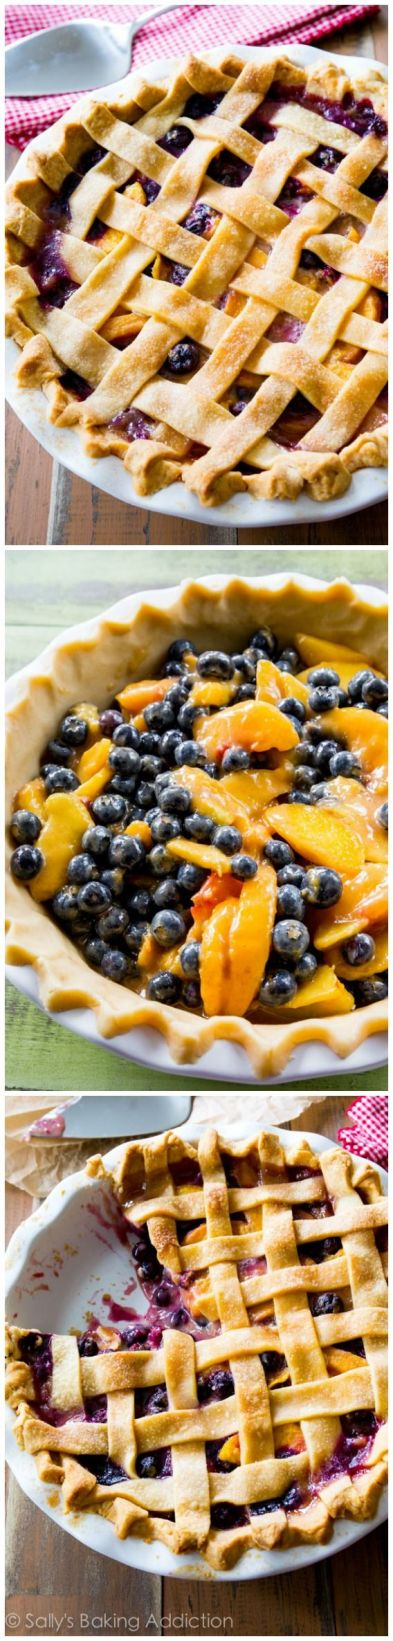 Blueberry Peach Pie - recipe and details shared on Sally's Baking Addiction